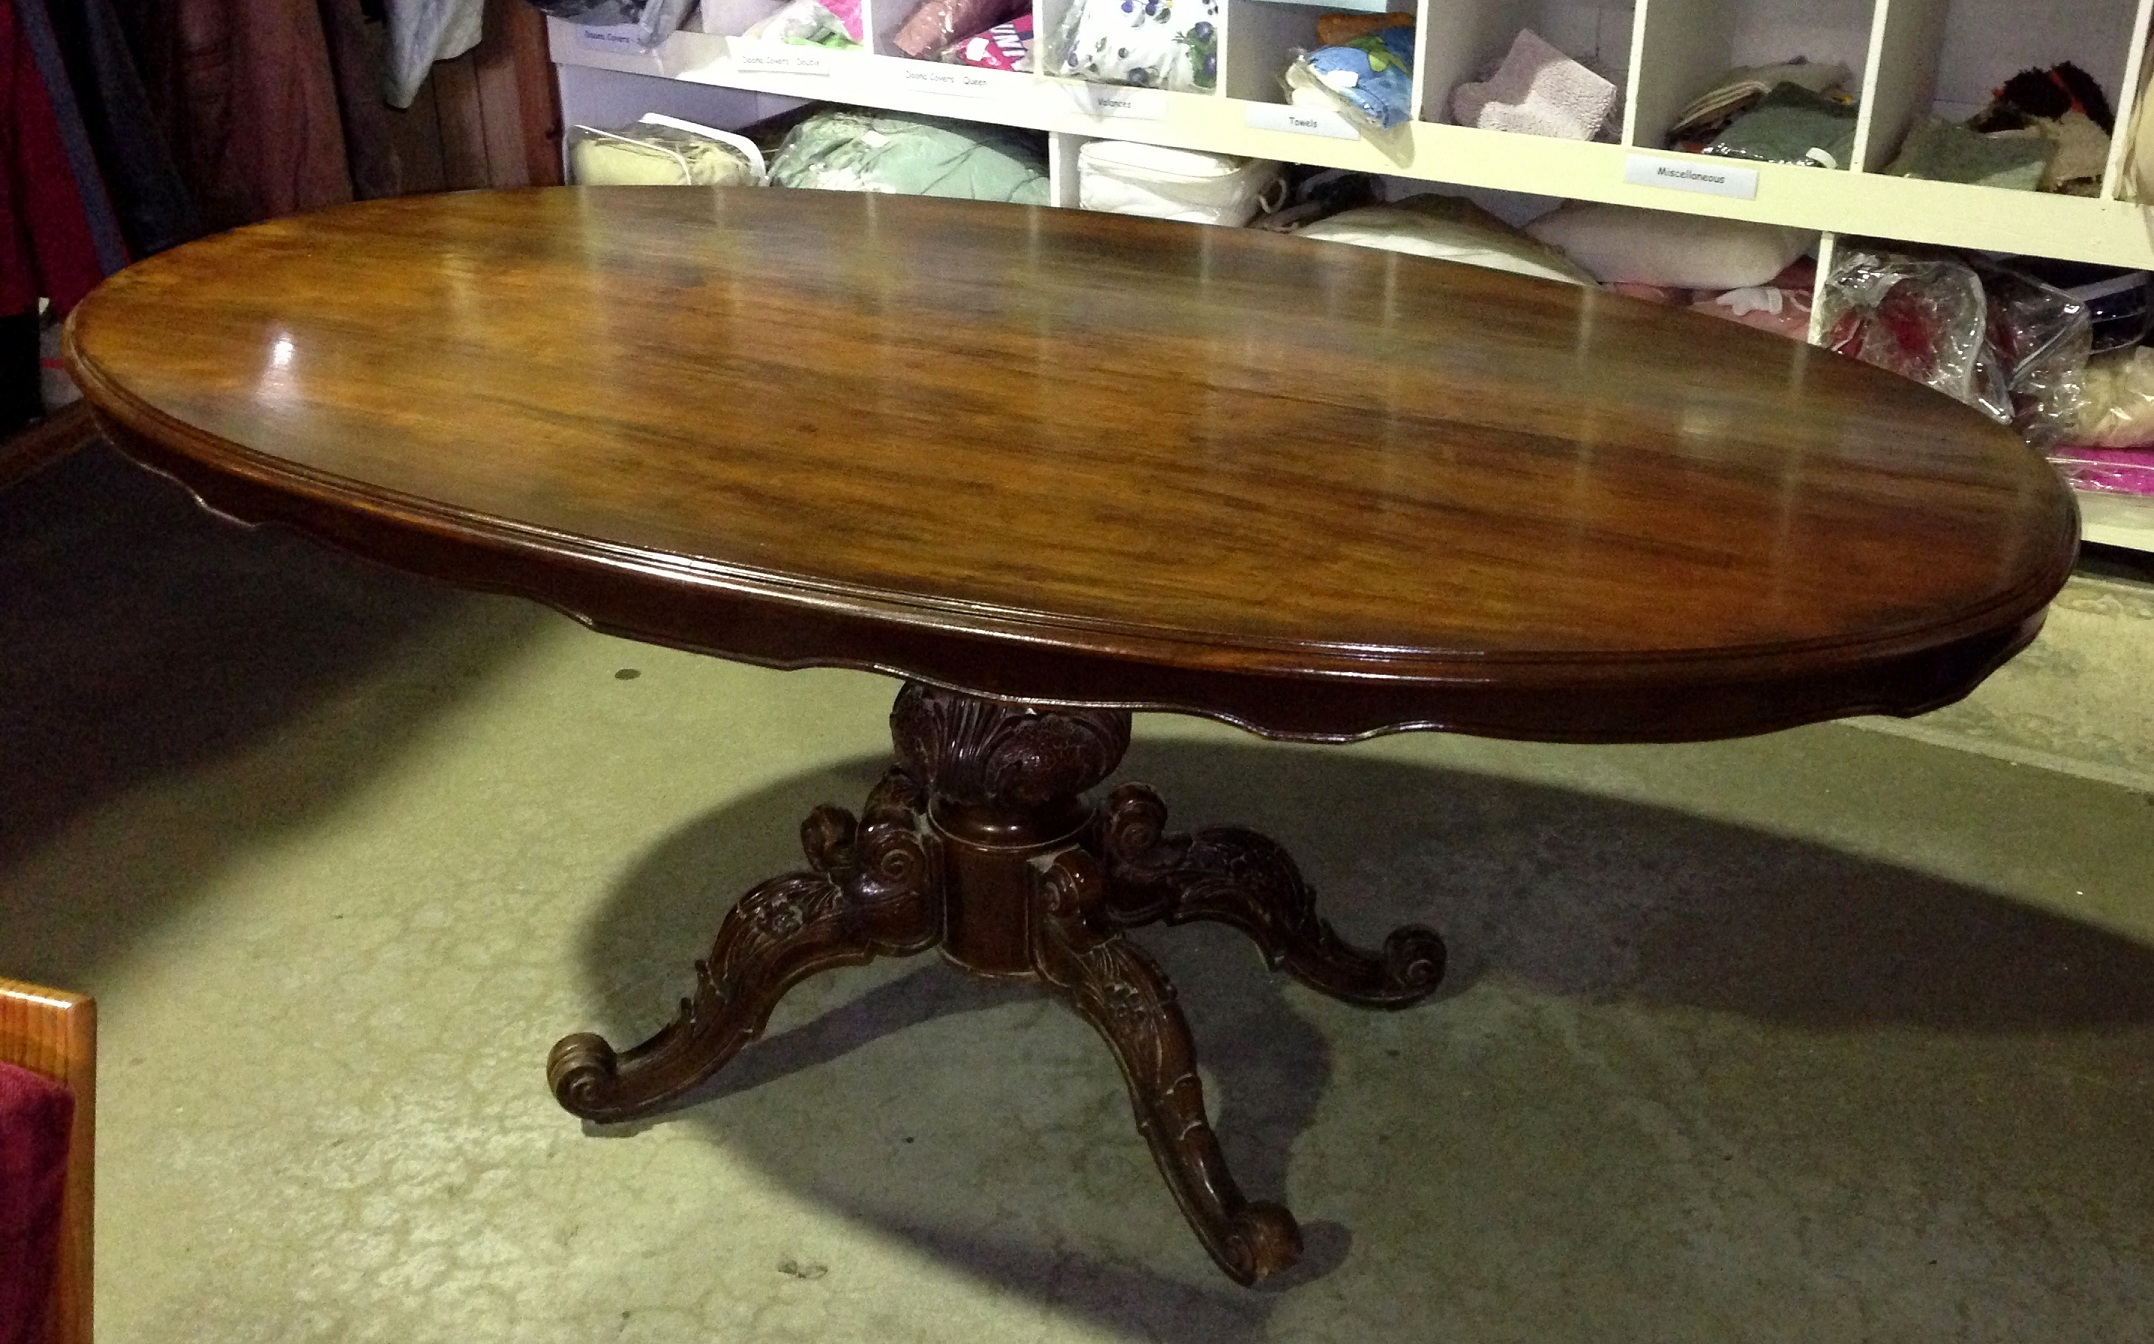 Good Oval Shaped Dining Table With Apron And Pedestal Base With Carved Legs And  Feet